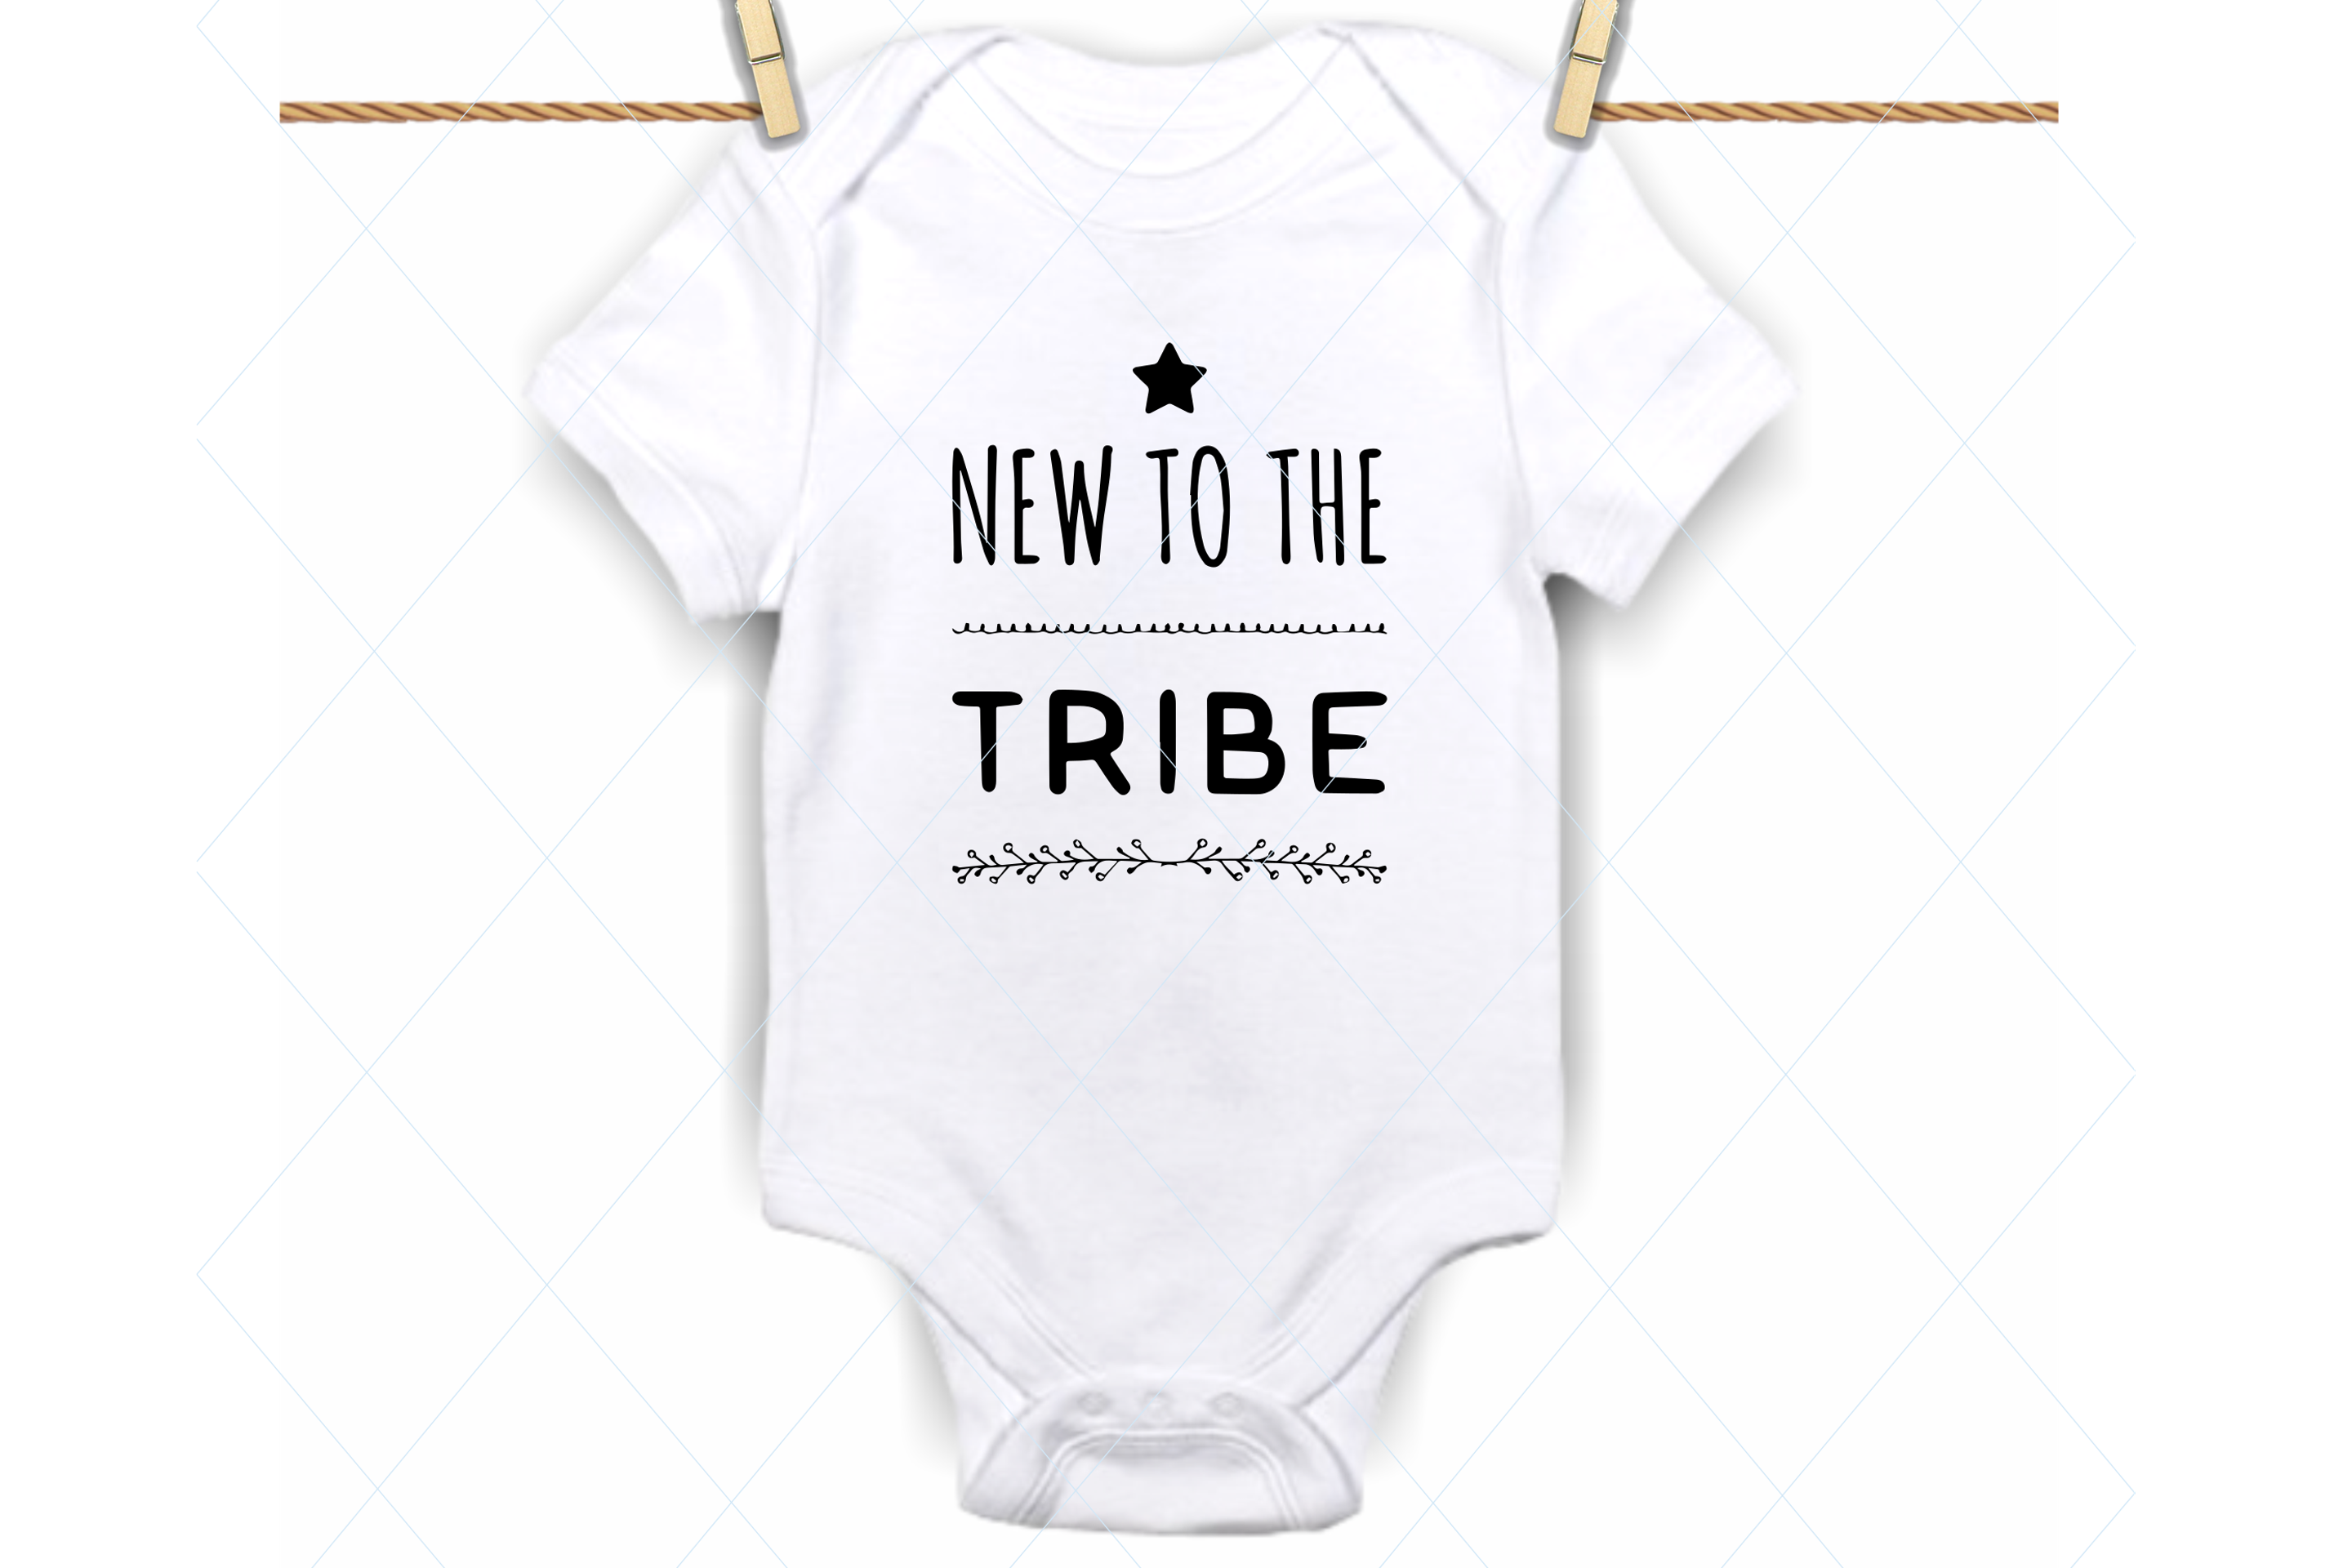 New To The Tribe Svg Baby Onesie Svg Graphic By Thelovebyrds